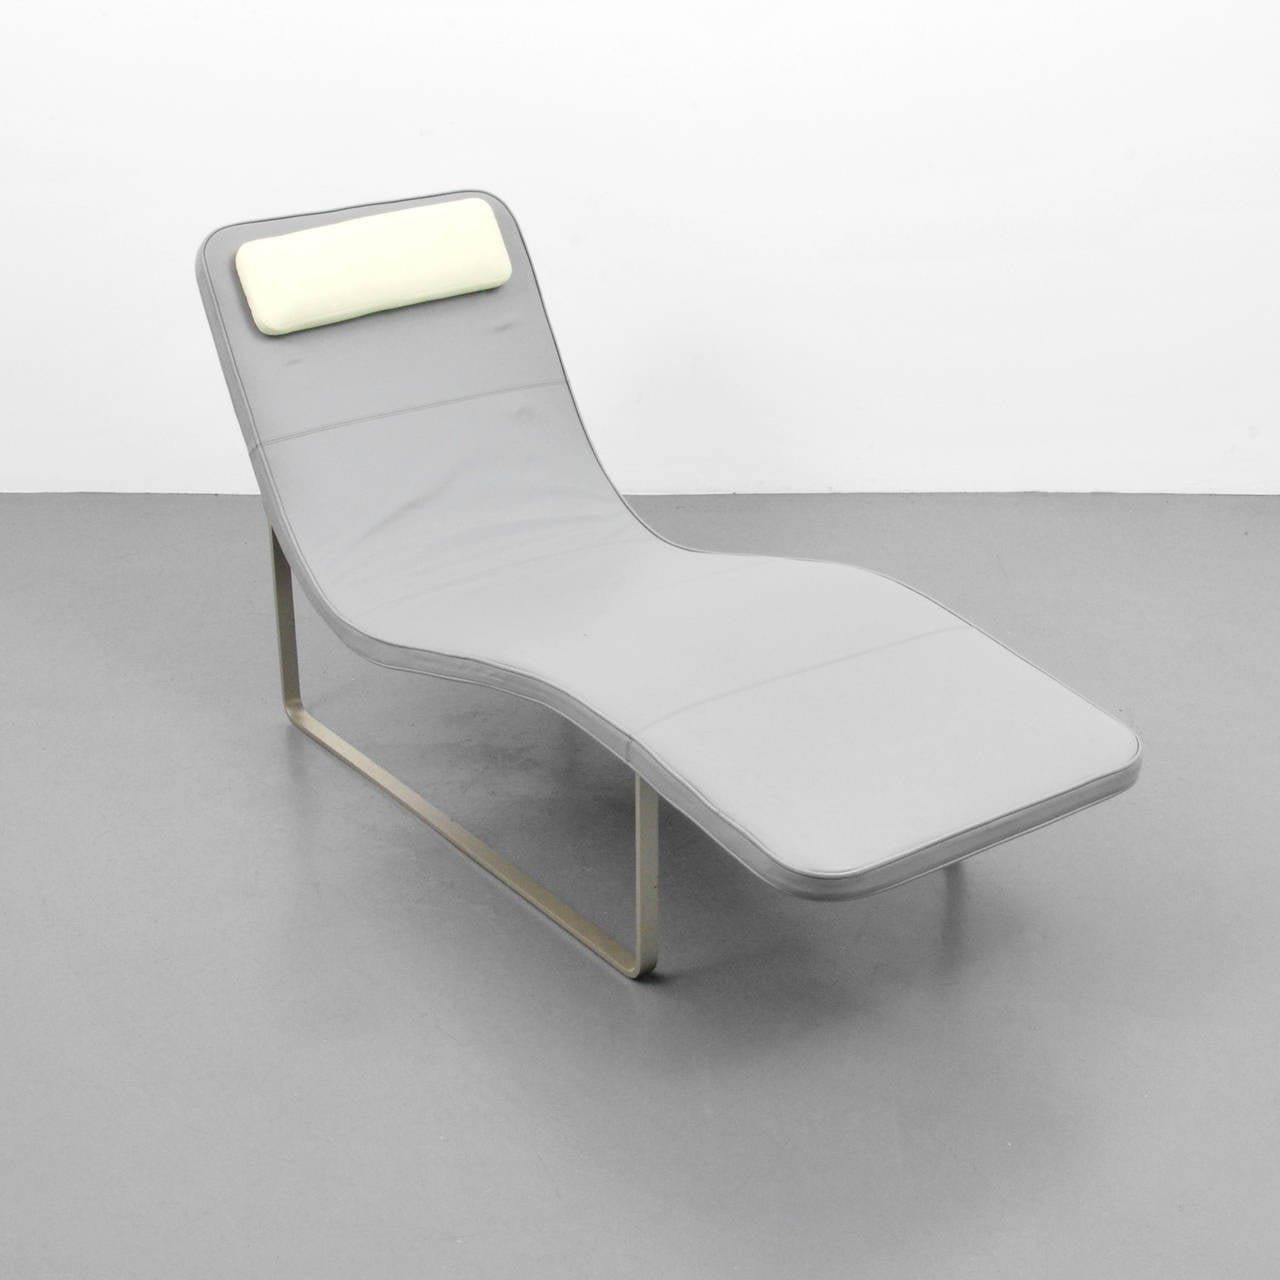 Jeffrey bernett leather chaise lounge at 1stdibs for Blue leather chaise lounge